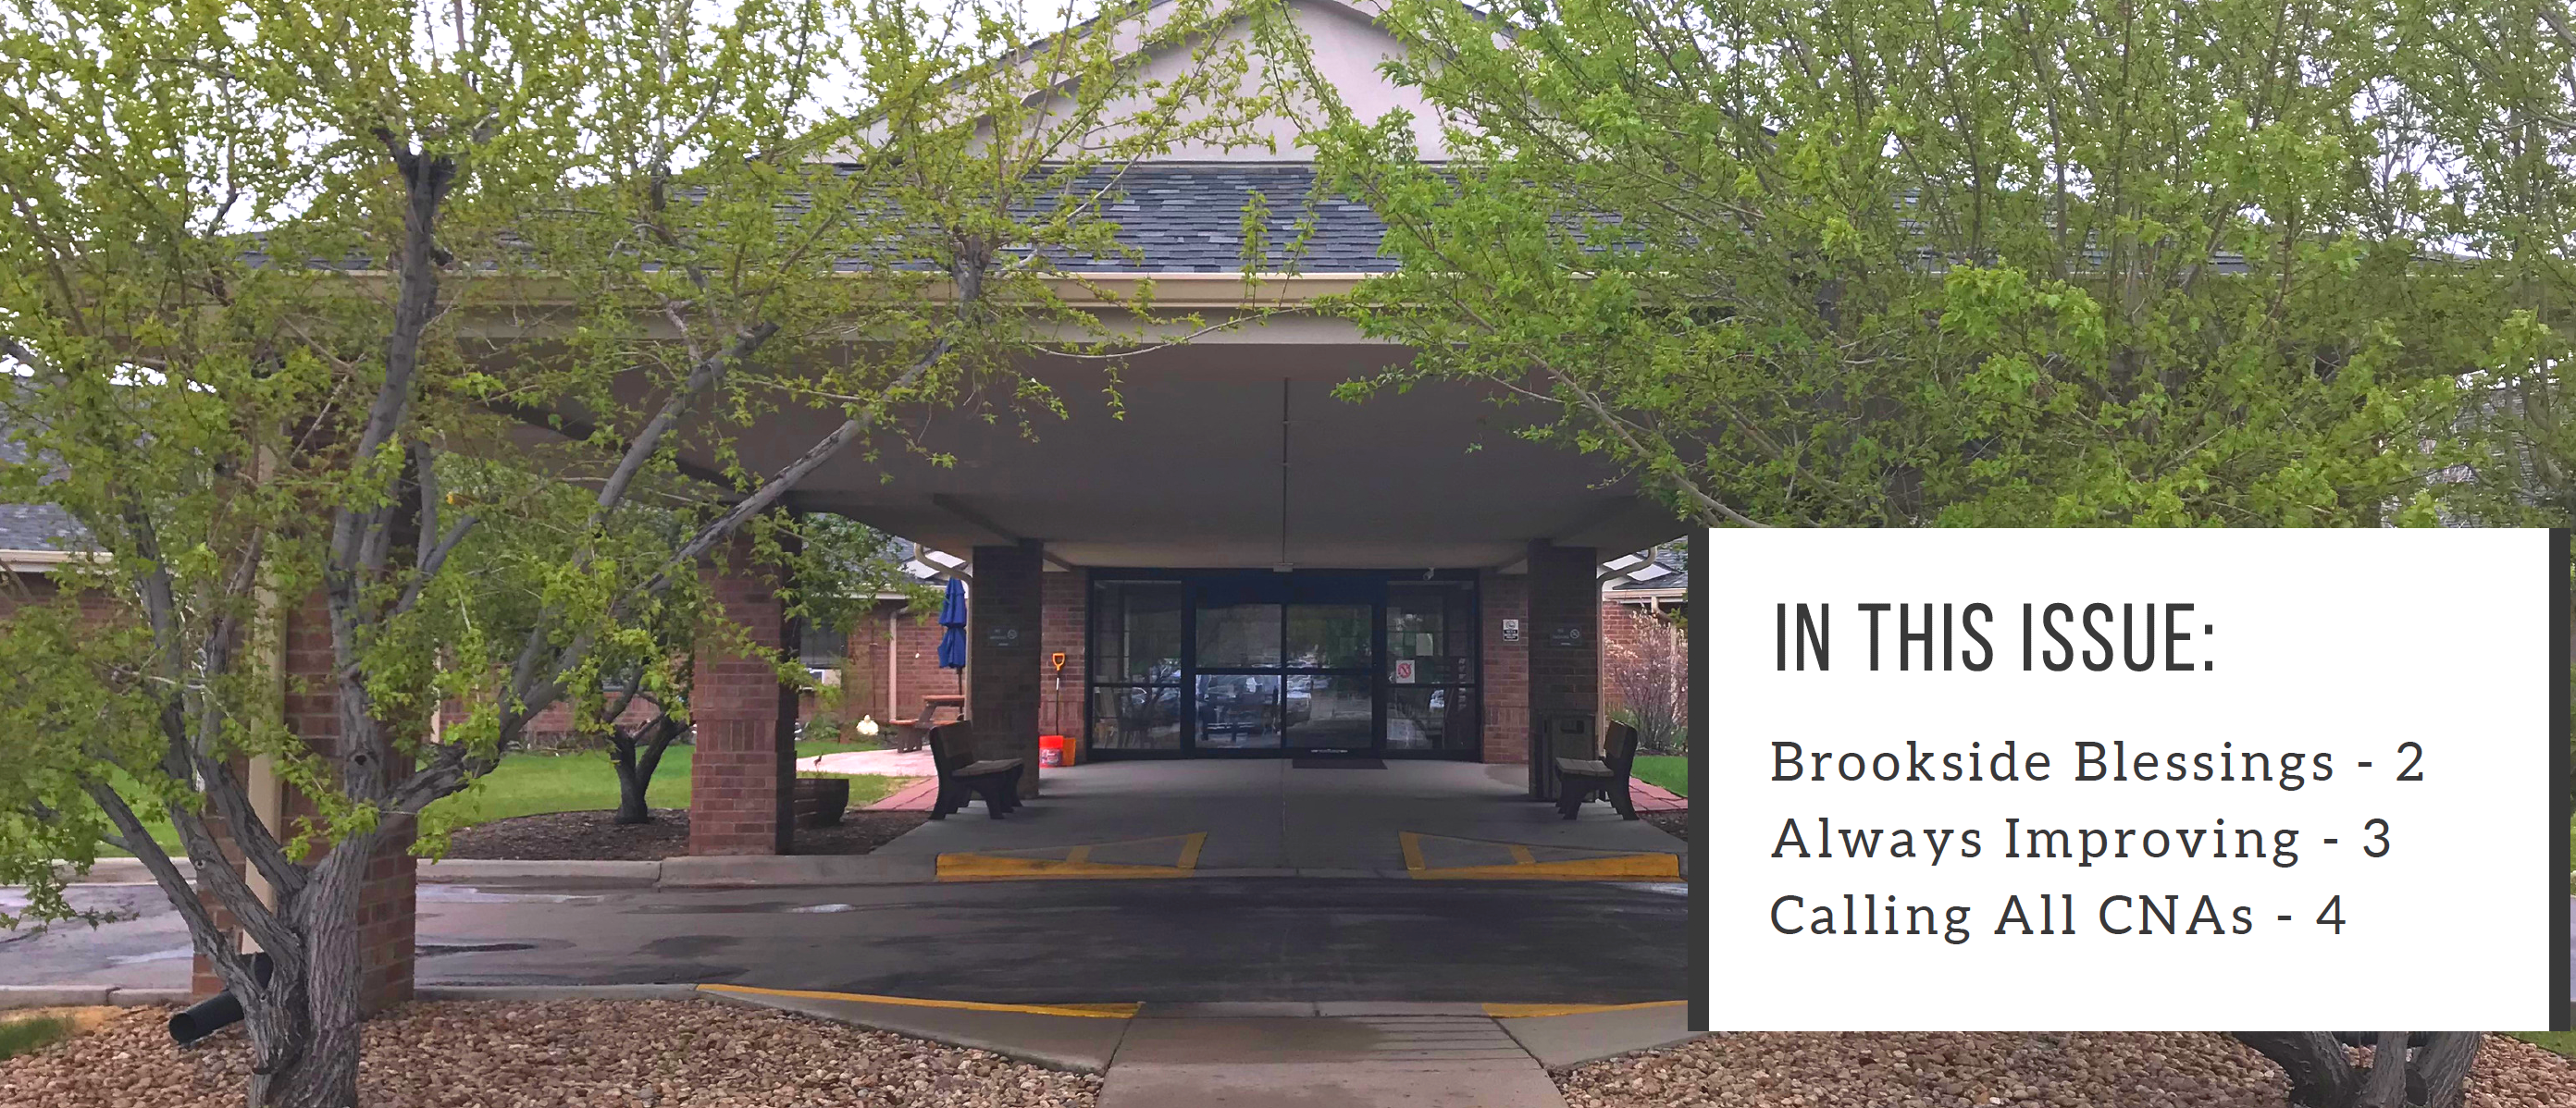 In this issue,Brookside Blessings, Always Improving and Calling All CNAs.